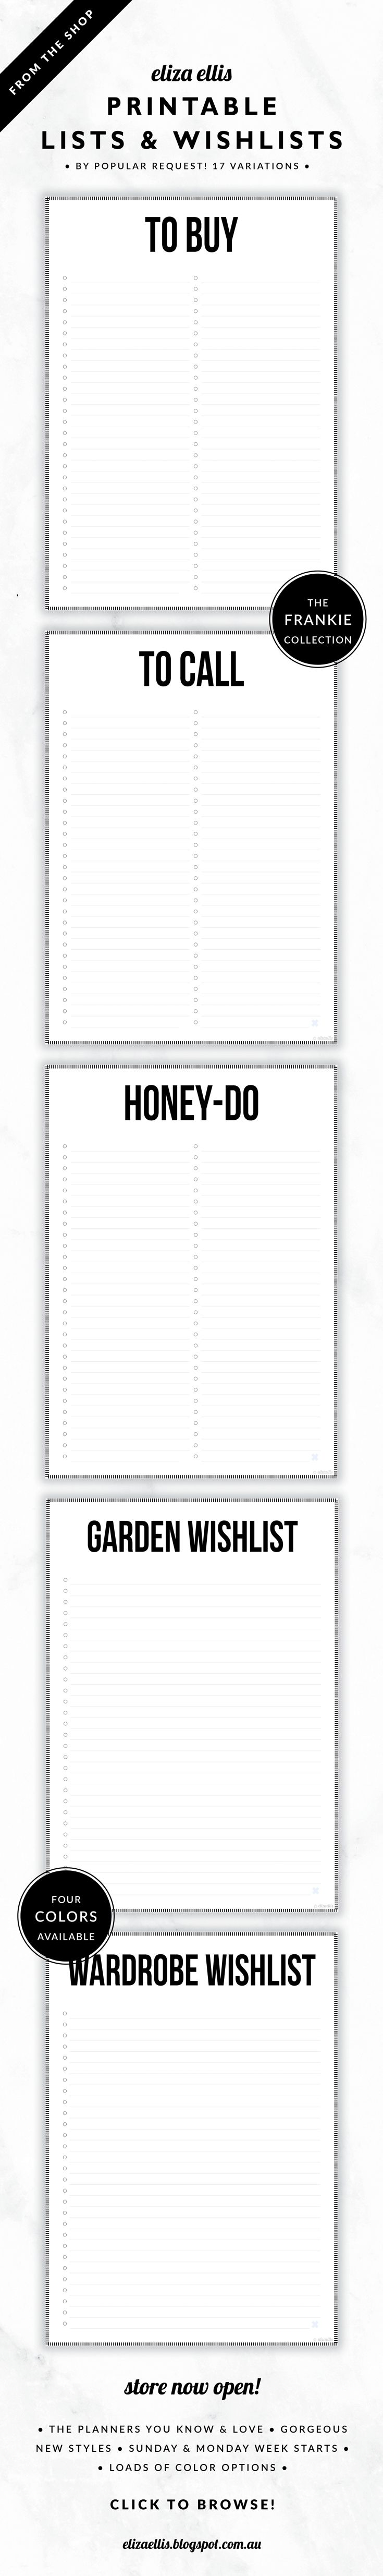 Printable Lists and Wishlists – batch your tasks with the to buy, call and follow up lists. Prioritize your time with the now/later/someday lists, write down the series/books/music you'd love so you don't forget –ditto for home/garden/beauty and fashion, and keep up to date with the home and garden maintenance lists. // The Frankie Collection by Eliza Ellis. Classic, bold design with hash border. Available in 4 colors – silk, mist, smoke and bone. Documents print to A4 or A5.